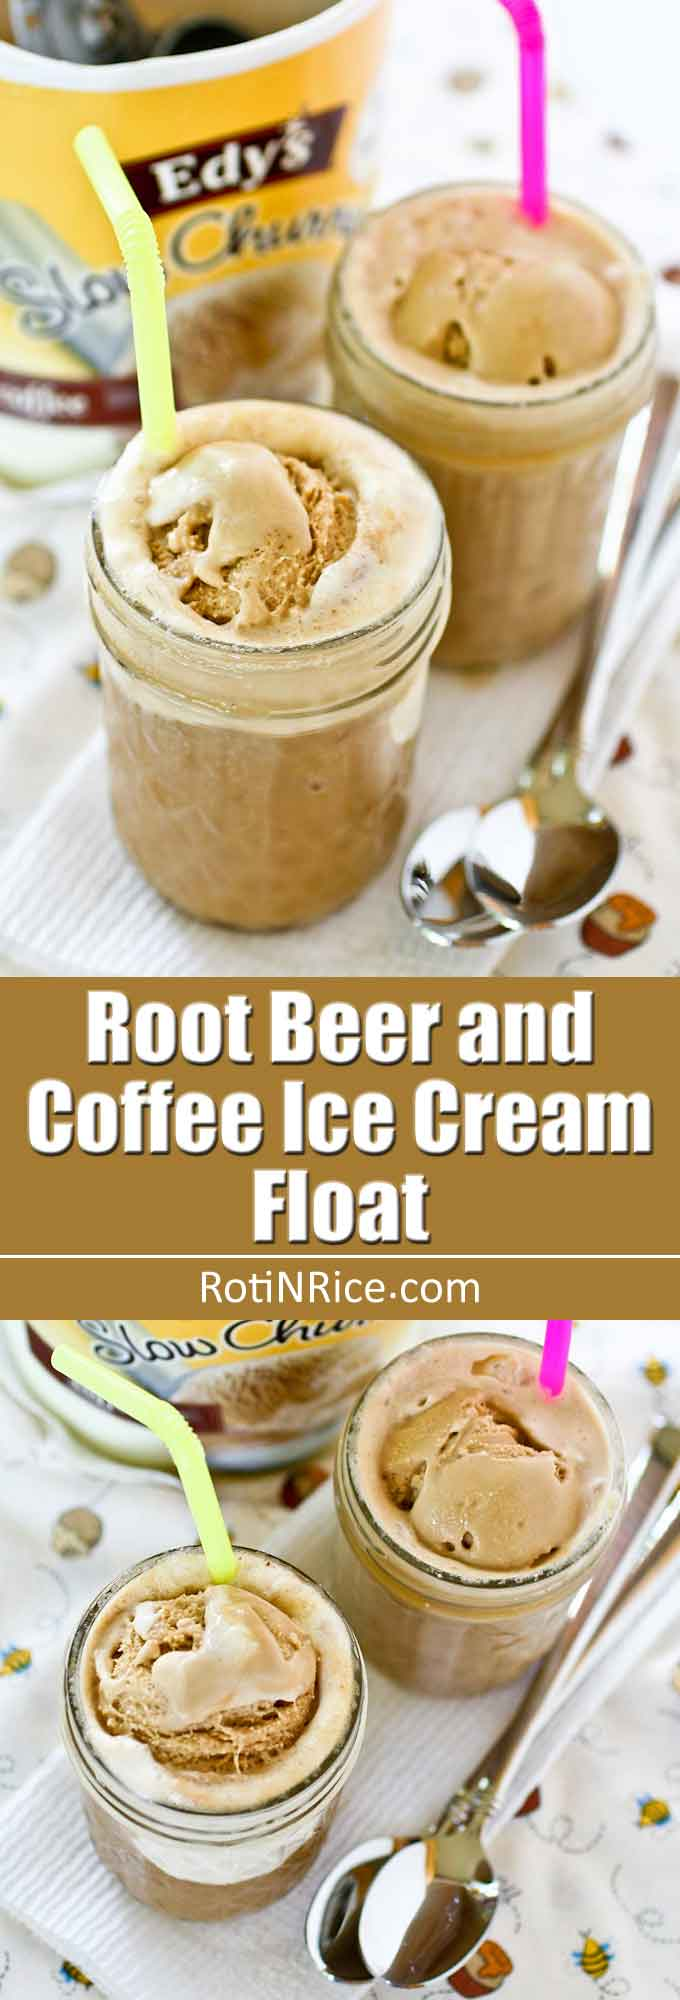 This Root Beer and Coffee Ice Cream Float is a variation on the classic. It has great flavor and is a delightful treat on a warm day. | RotiNRice.com